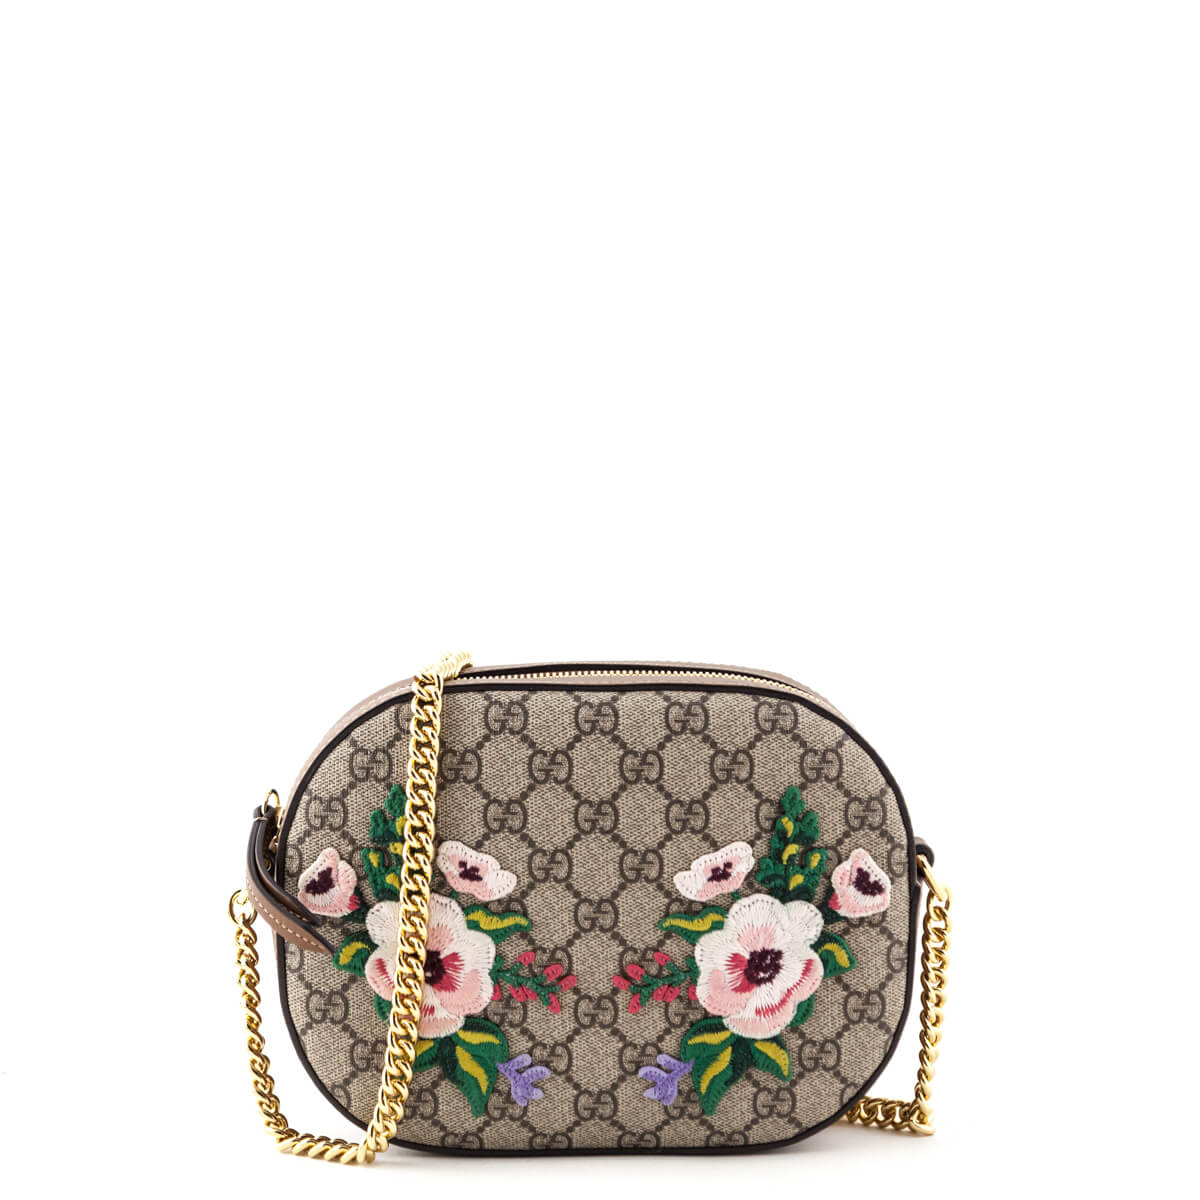 eededaca74f8 Gucci Monogram Garden GG Embroidered Mini Chain Bag - LOVE that BAG -  Preowned Authentic Designer ...